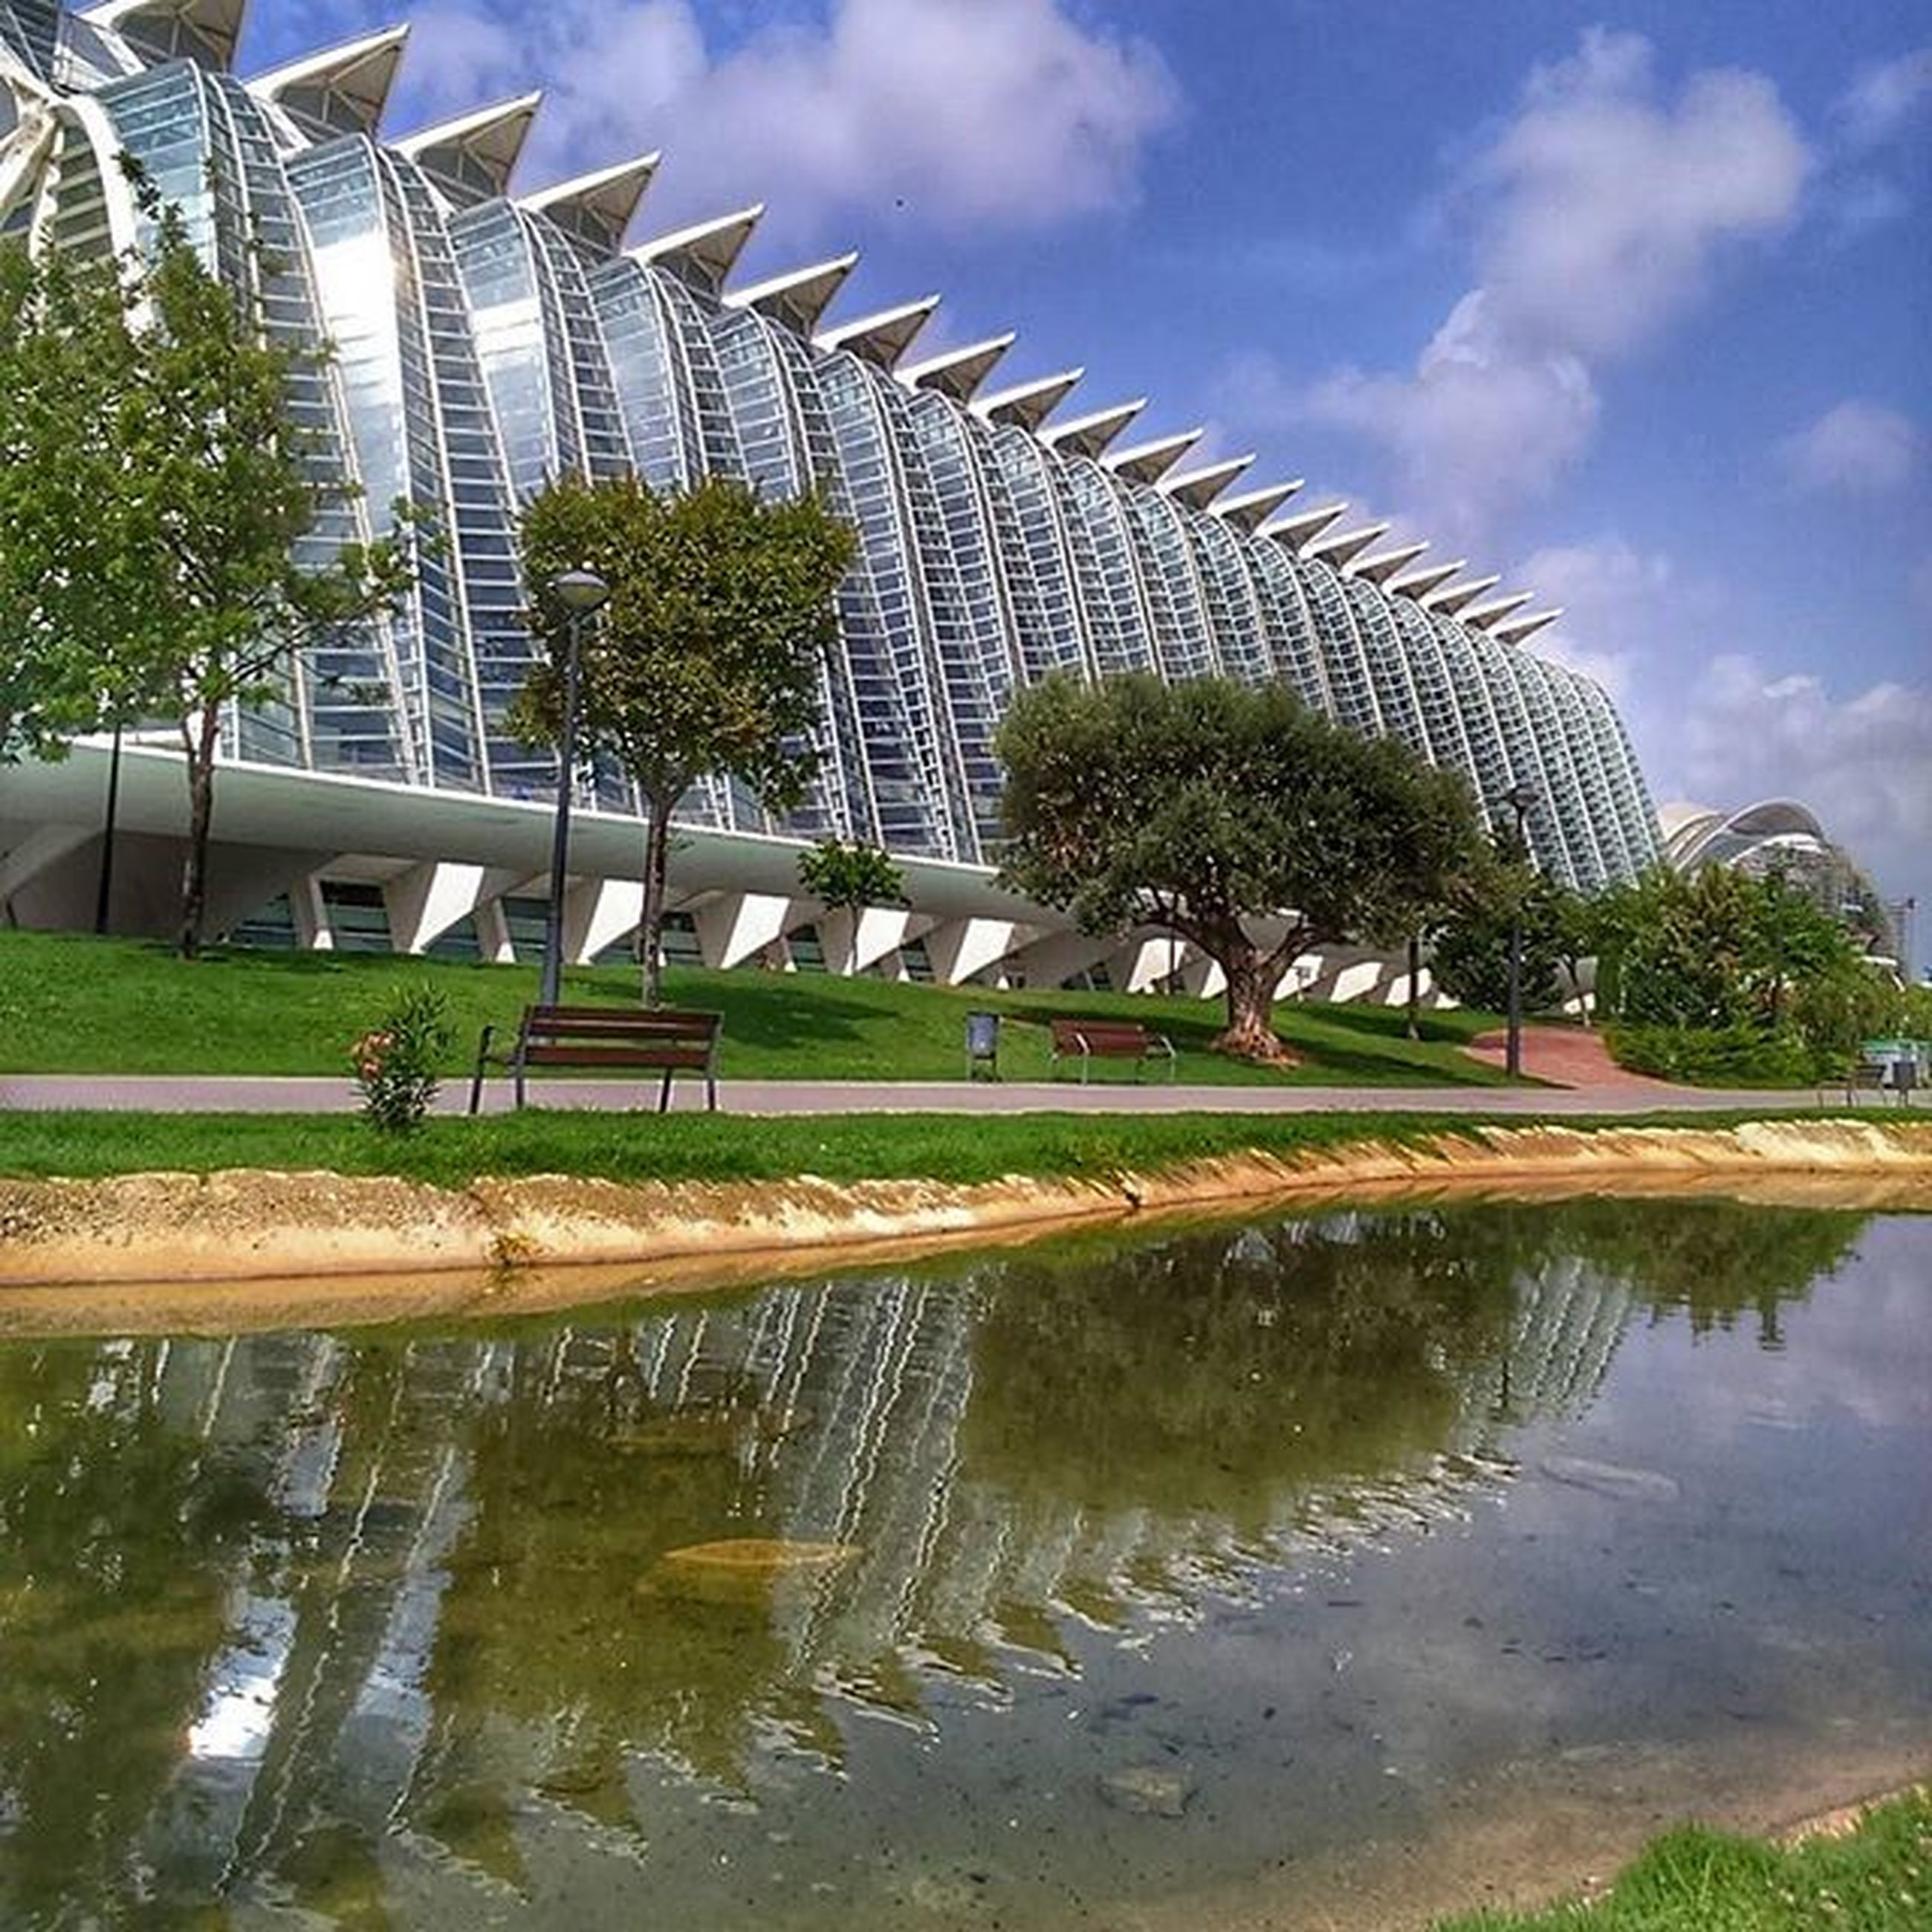 water, architecture, built structure, reflection, tree, building exterior, sky, grass, pond, fountain, cloud - sky, green color, park - man made space, waterfront, incidental people, nature, day, growth, cloud, outdoors